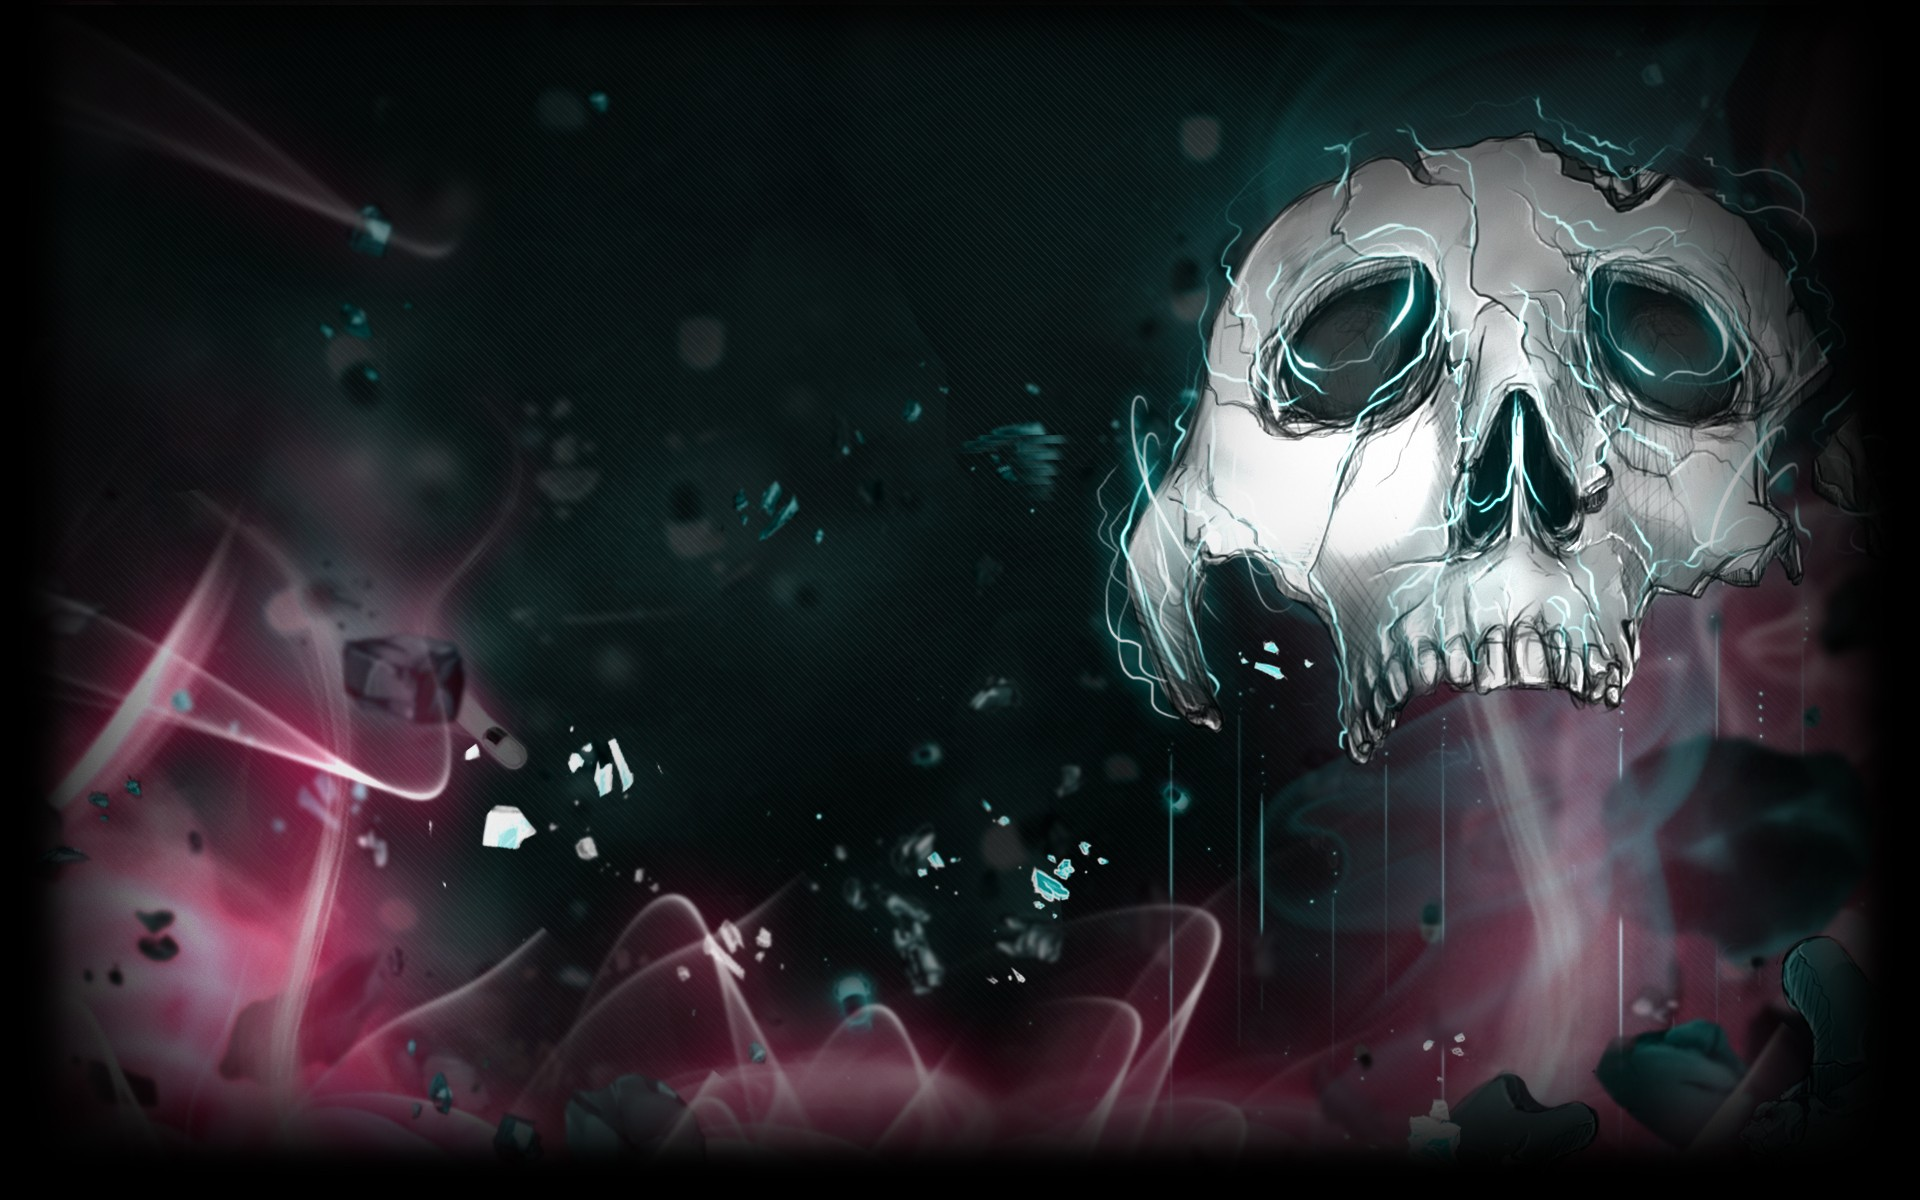 Skull Background 183 ① Download Free Awesome High Resolution